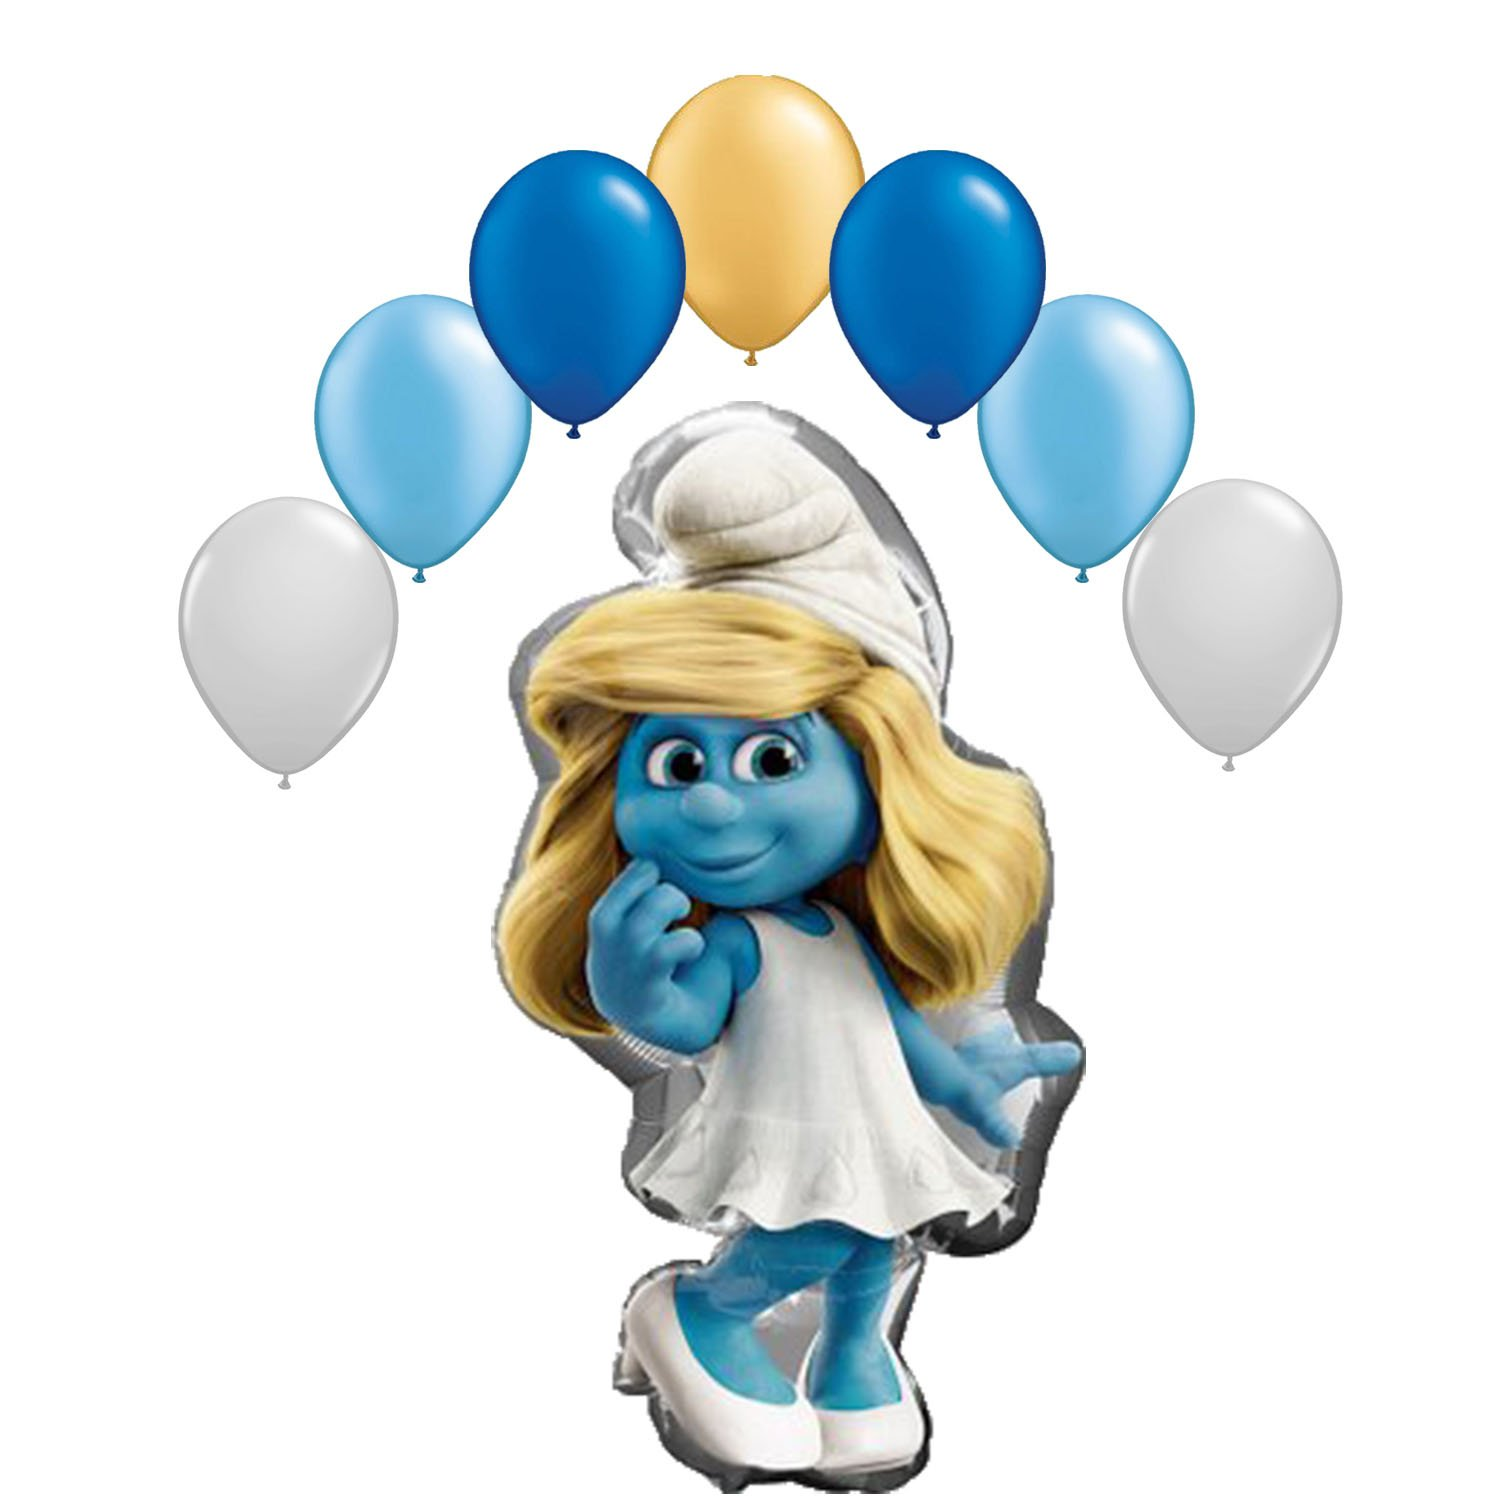 The Smurfs Smurfetteバルーンブーケ8 pc   B01BOA1KB2